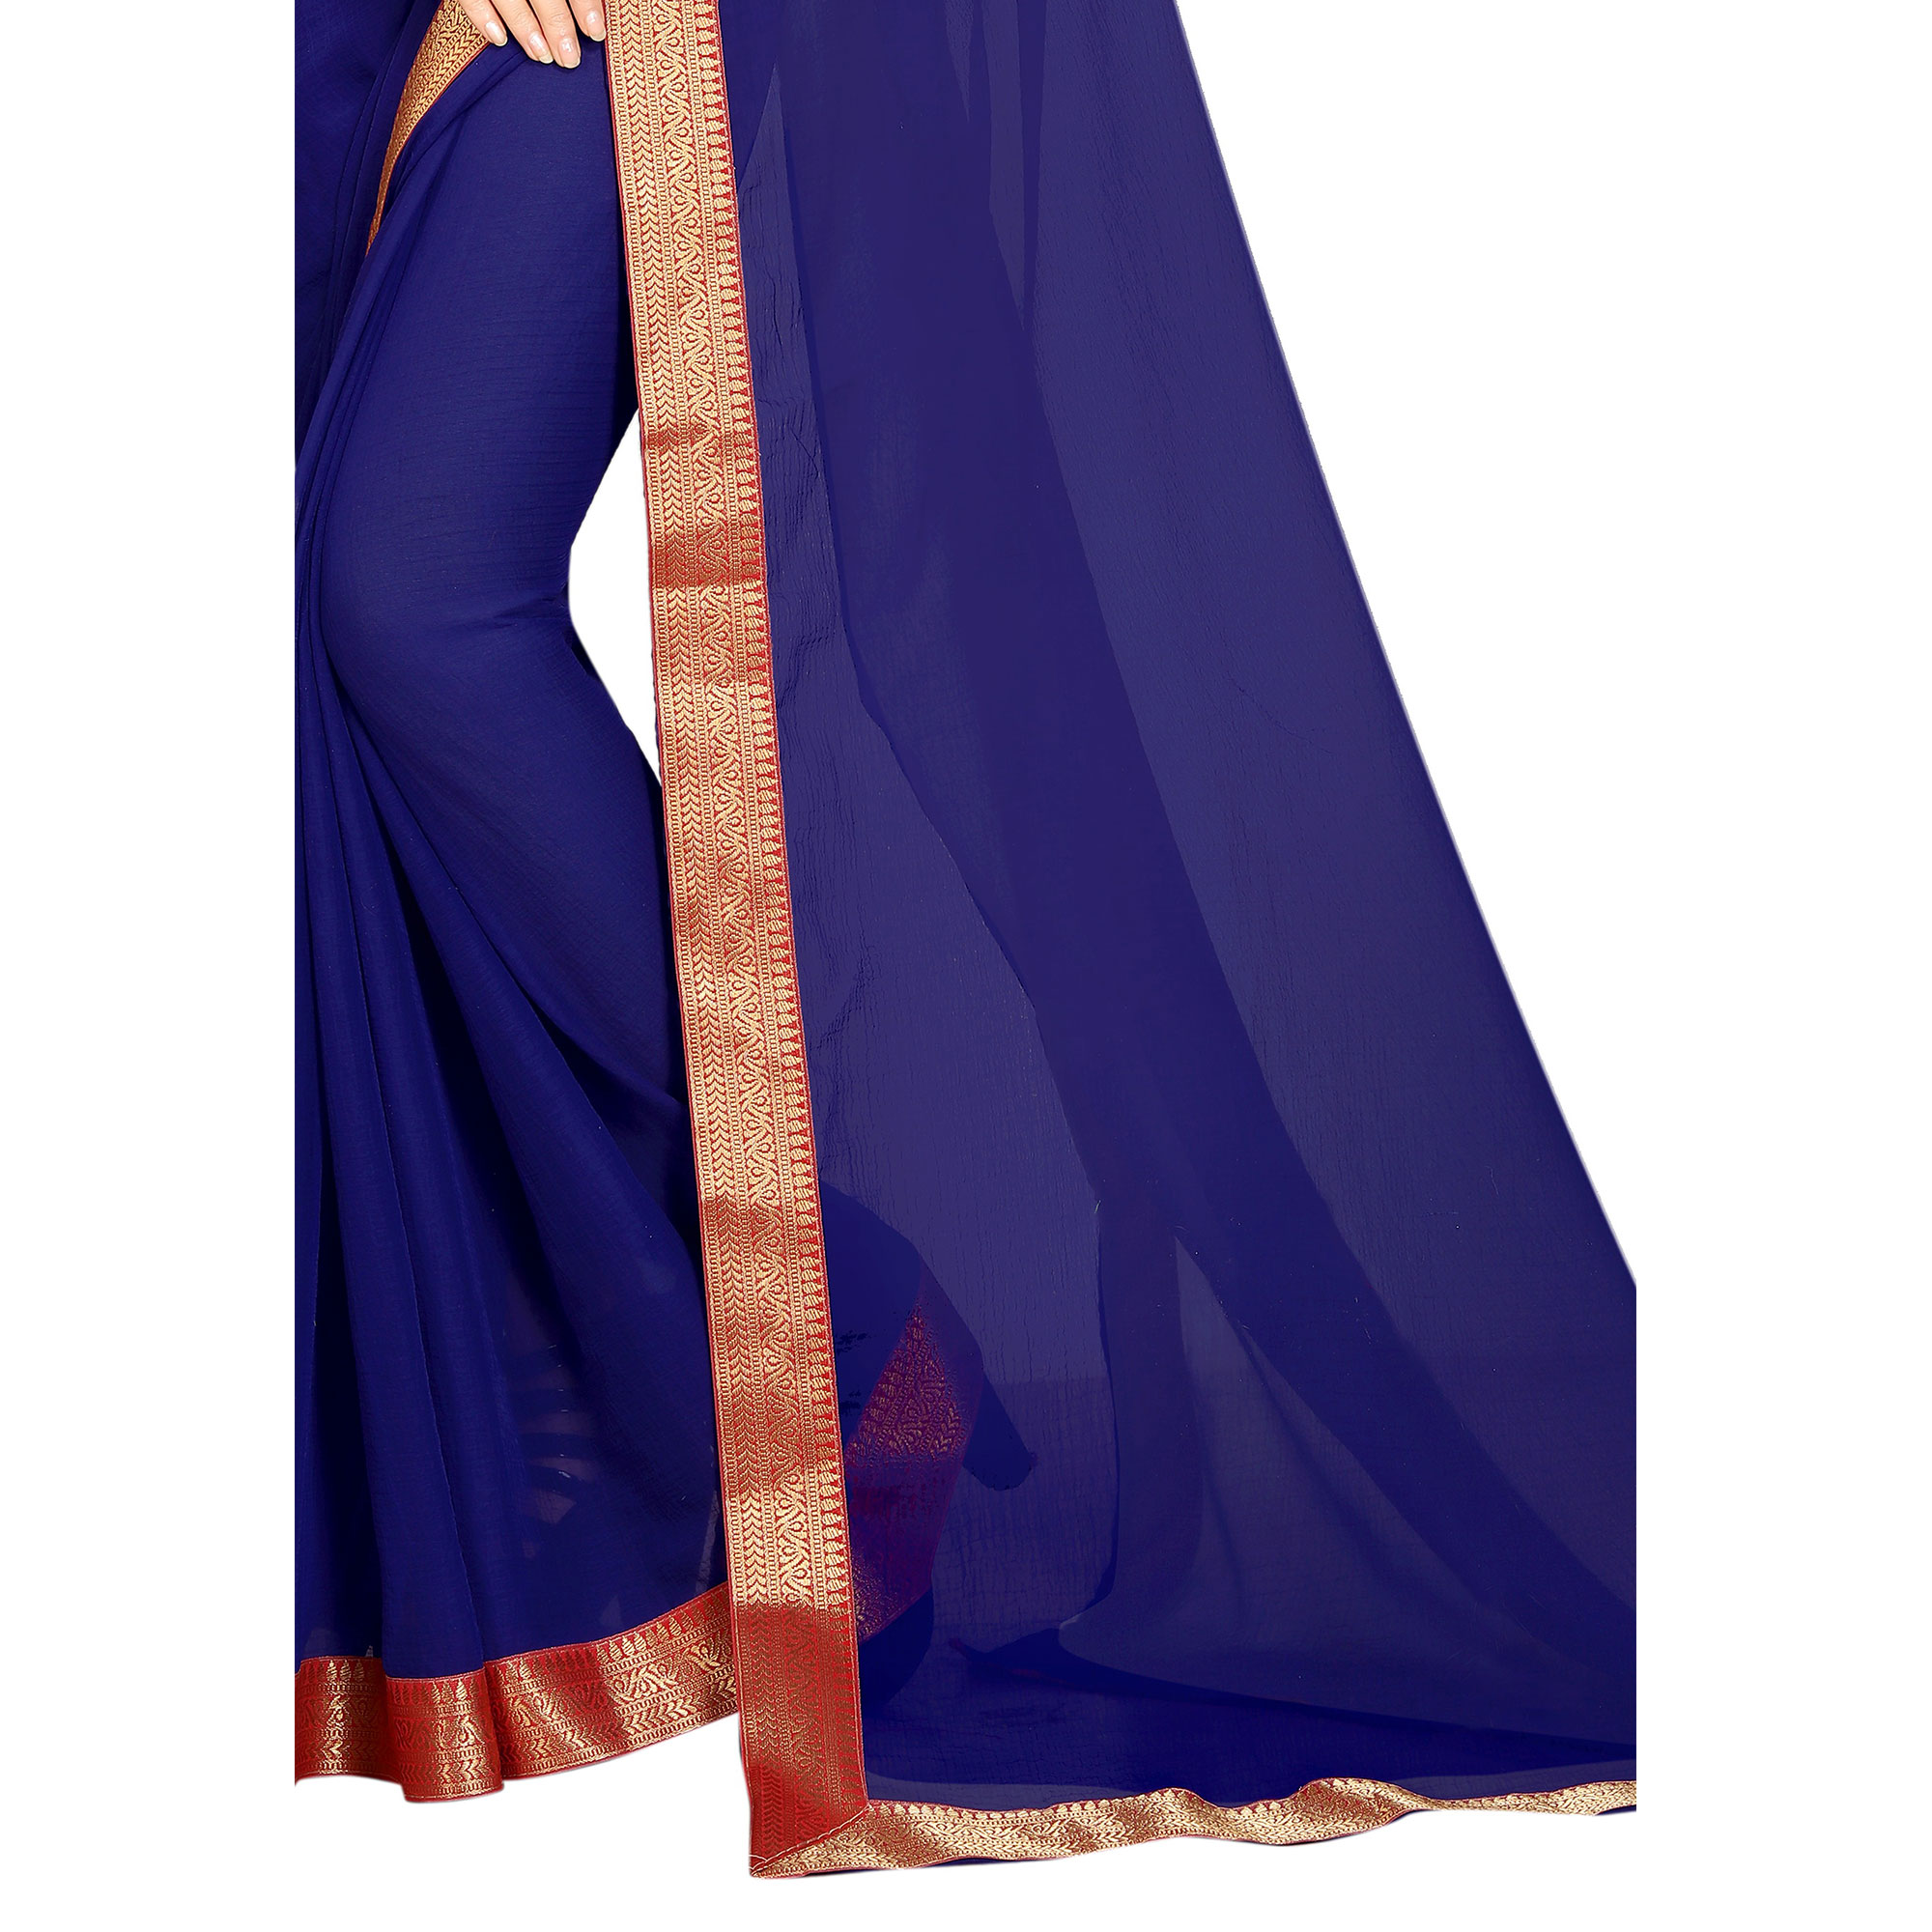 Opulent Navy Blue-Red Colored Partywear Chiffon Saree